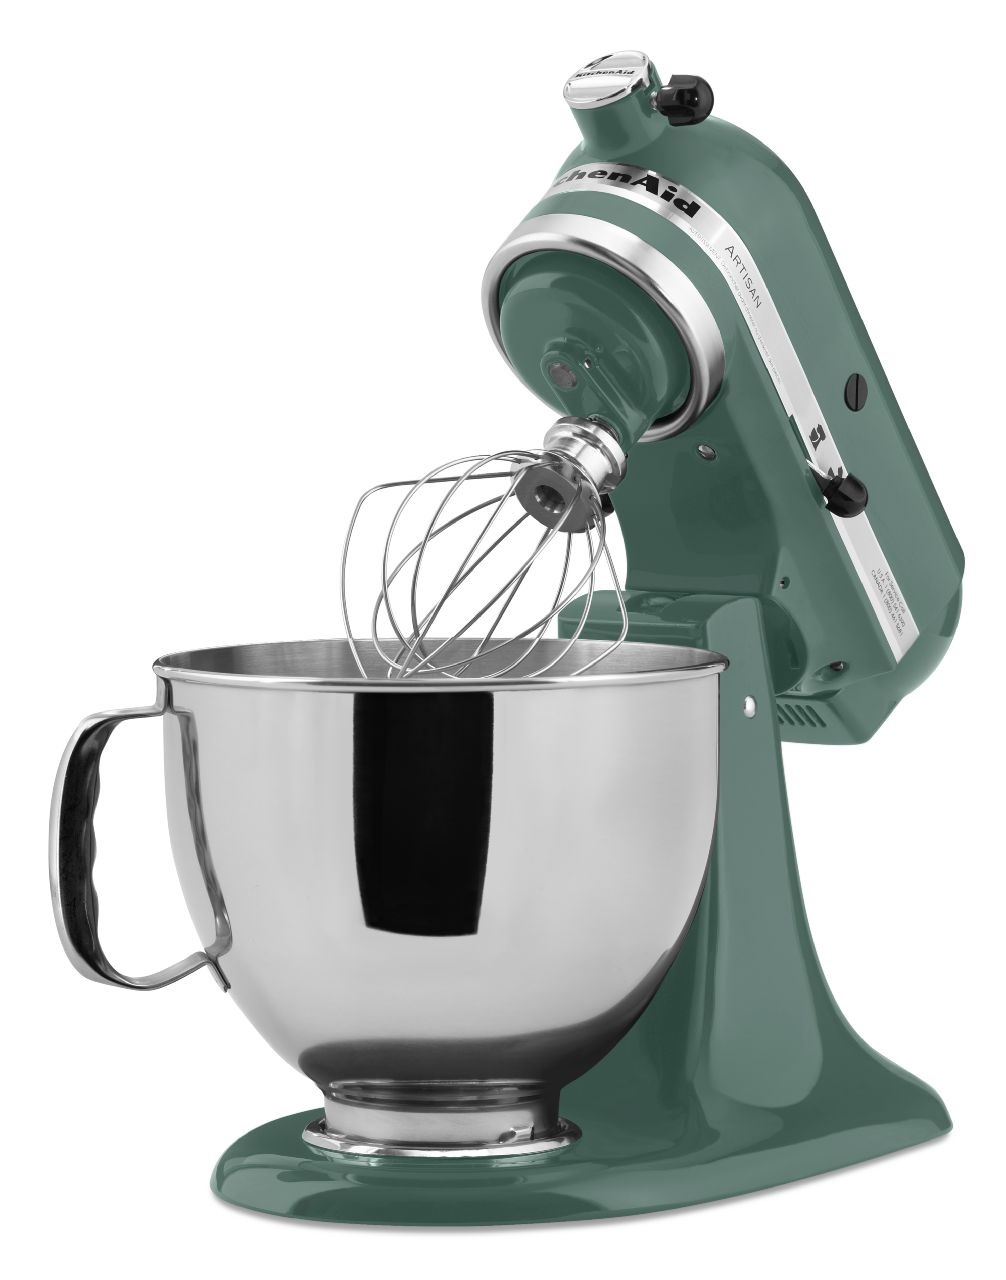 KitchenAid-Refurbished-Artisan-Series-5-Quart-Tilt-Head-Stand-Mixer-RRK150 thumbnail 10